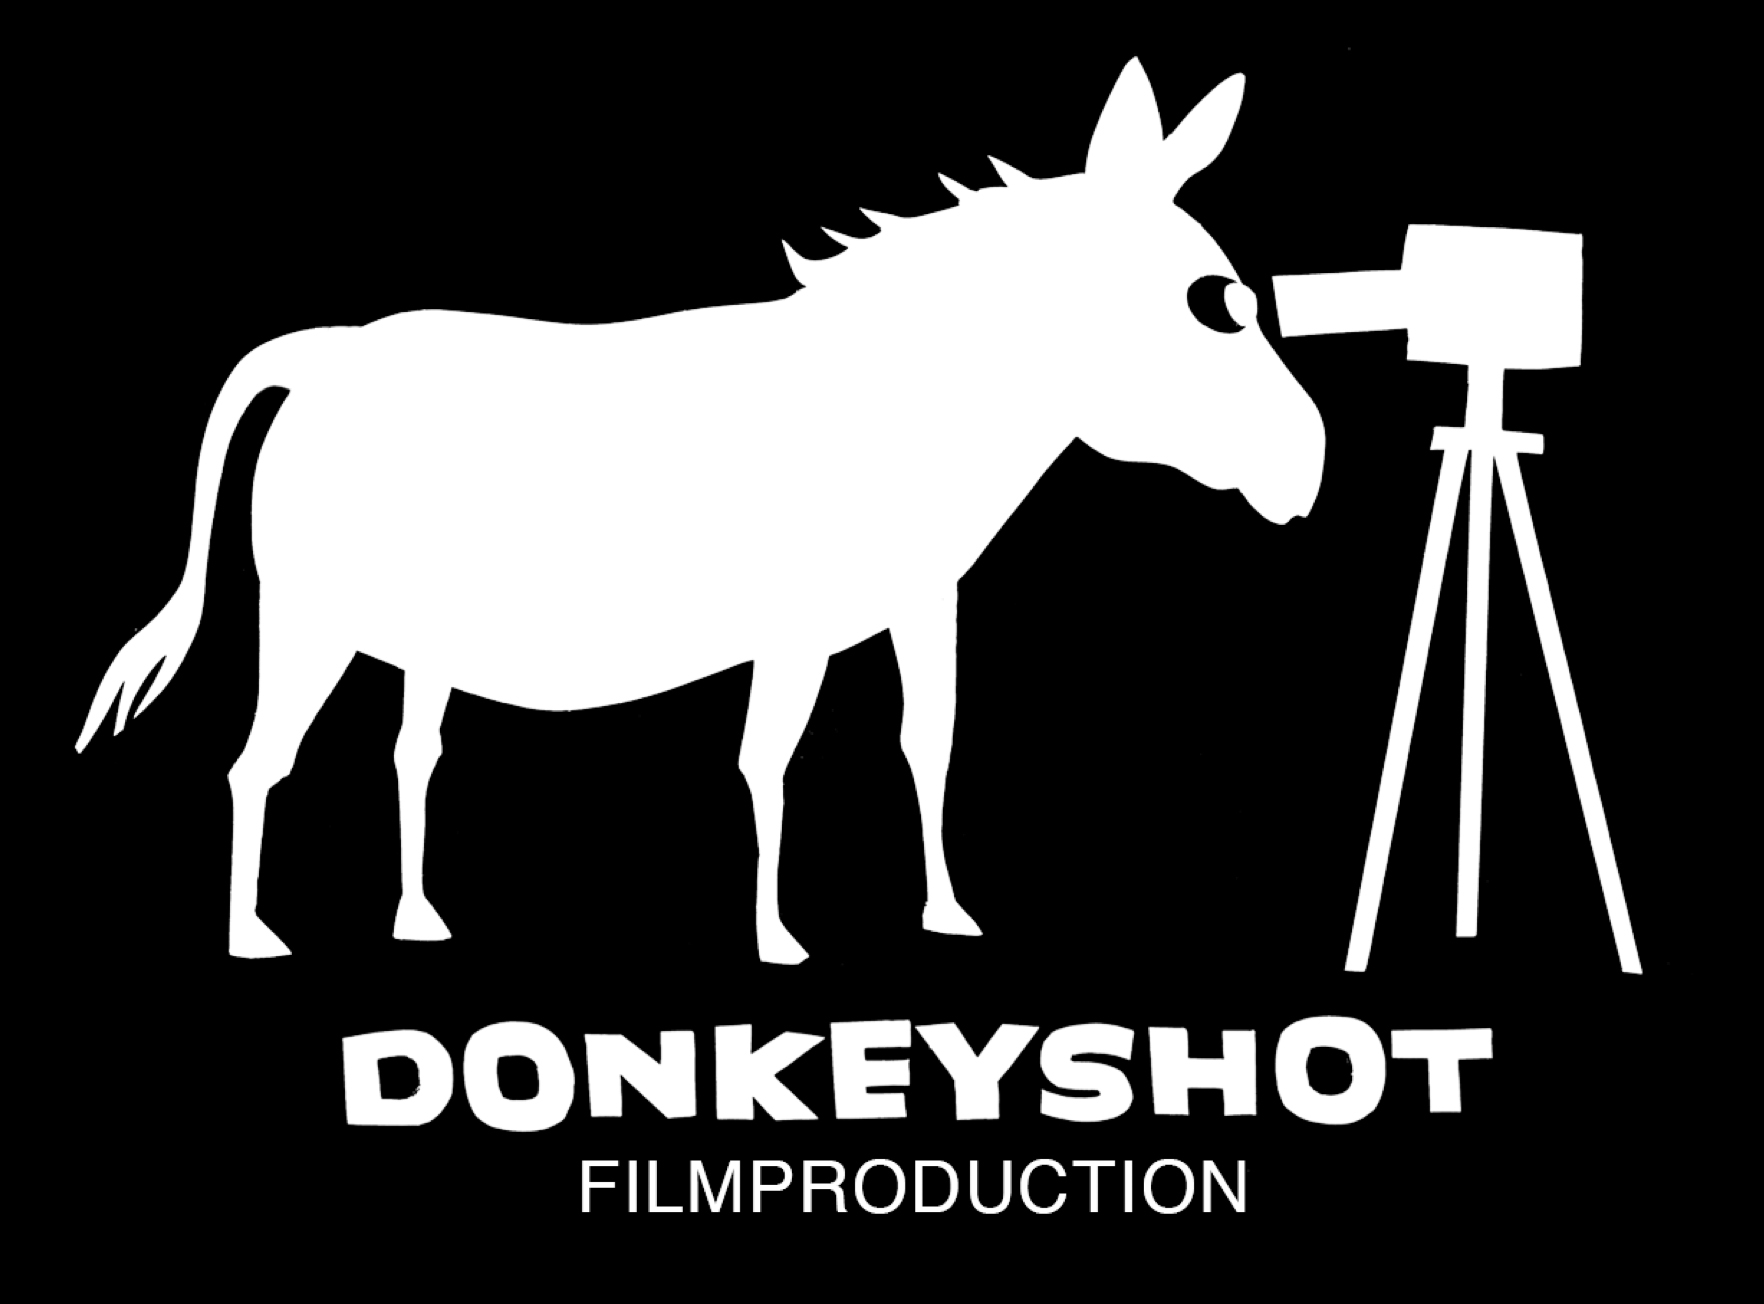 donkeyshot  filmproduction